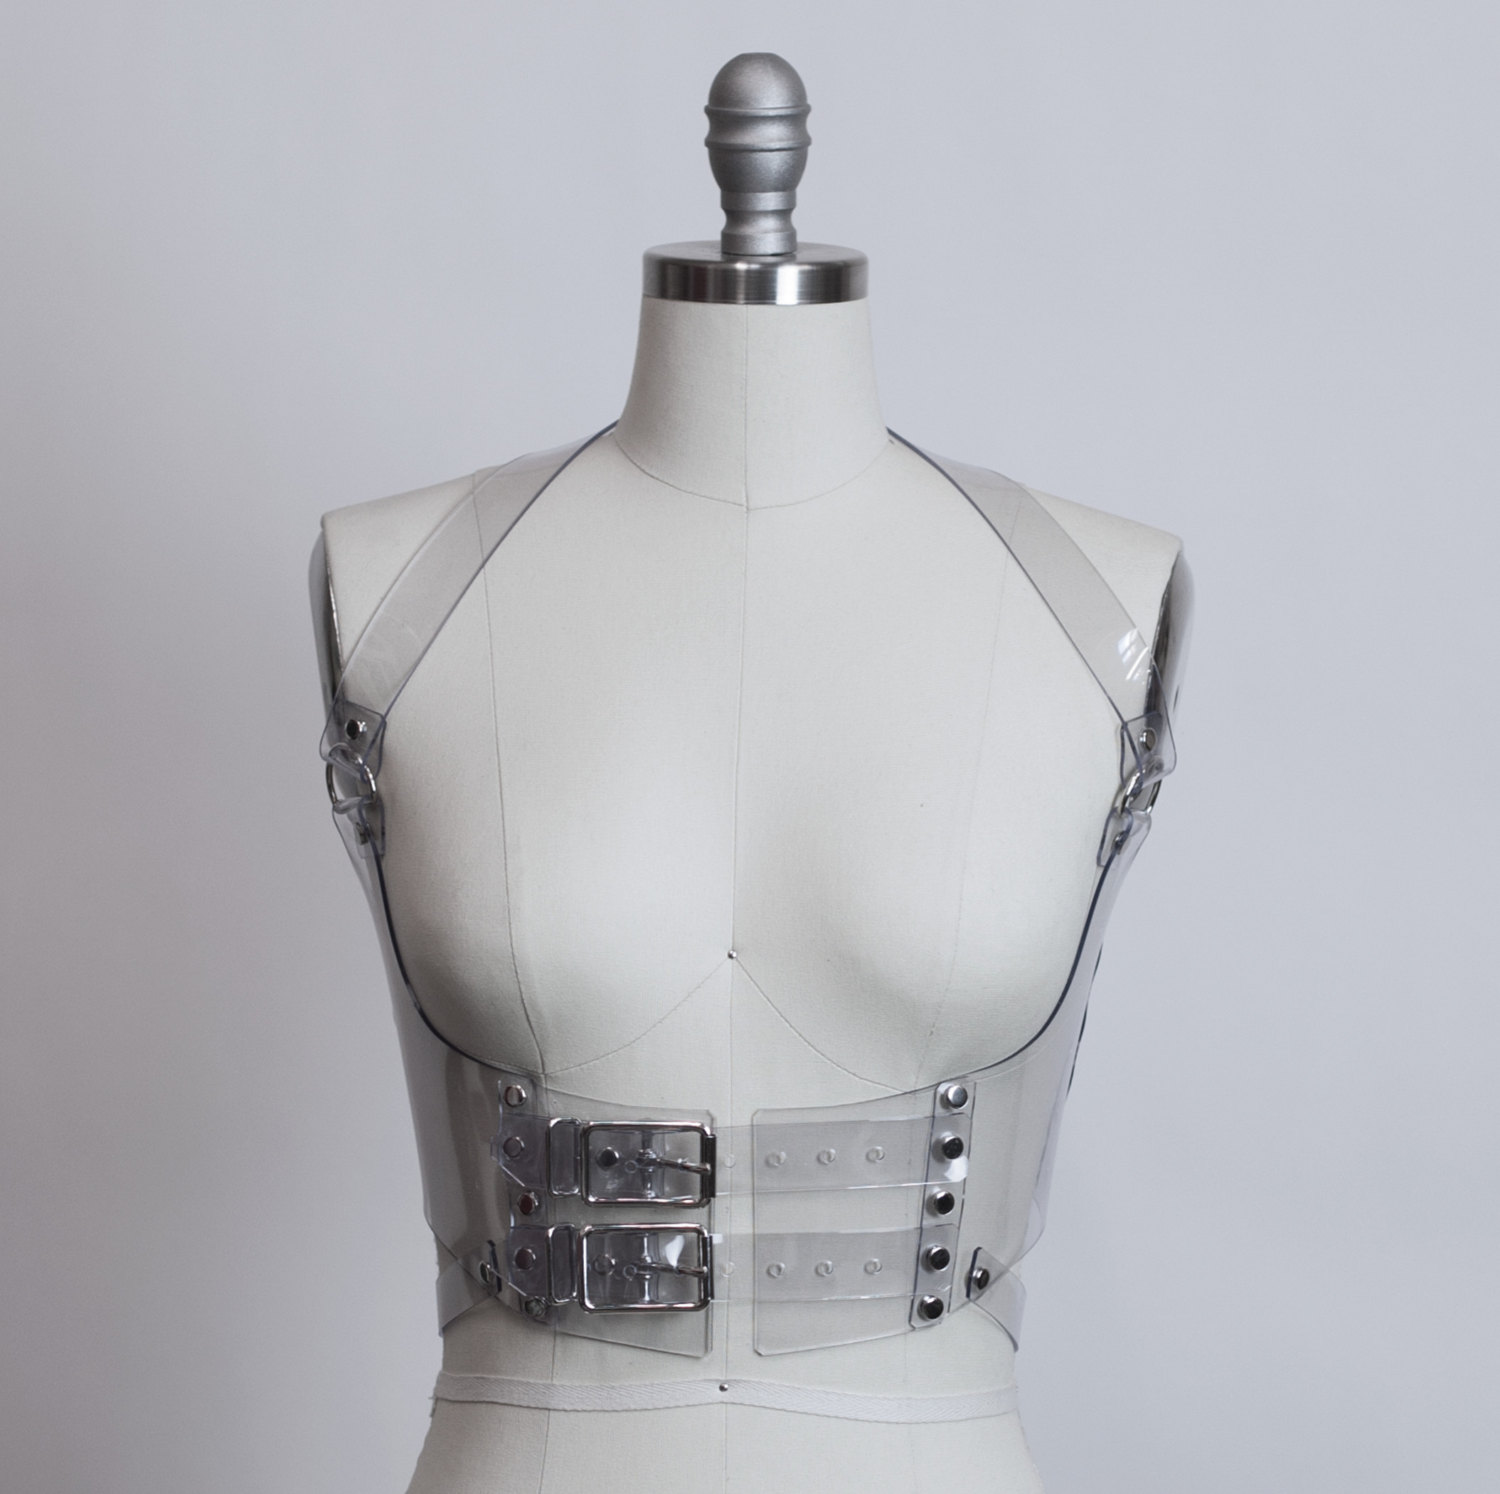 Clear Plastic Harness from  Apatico